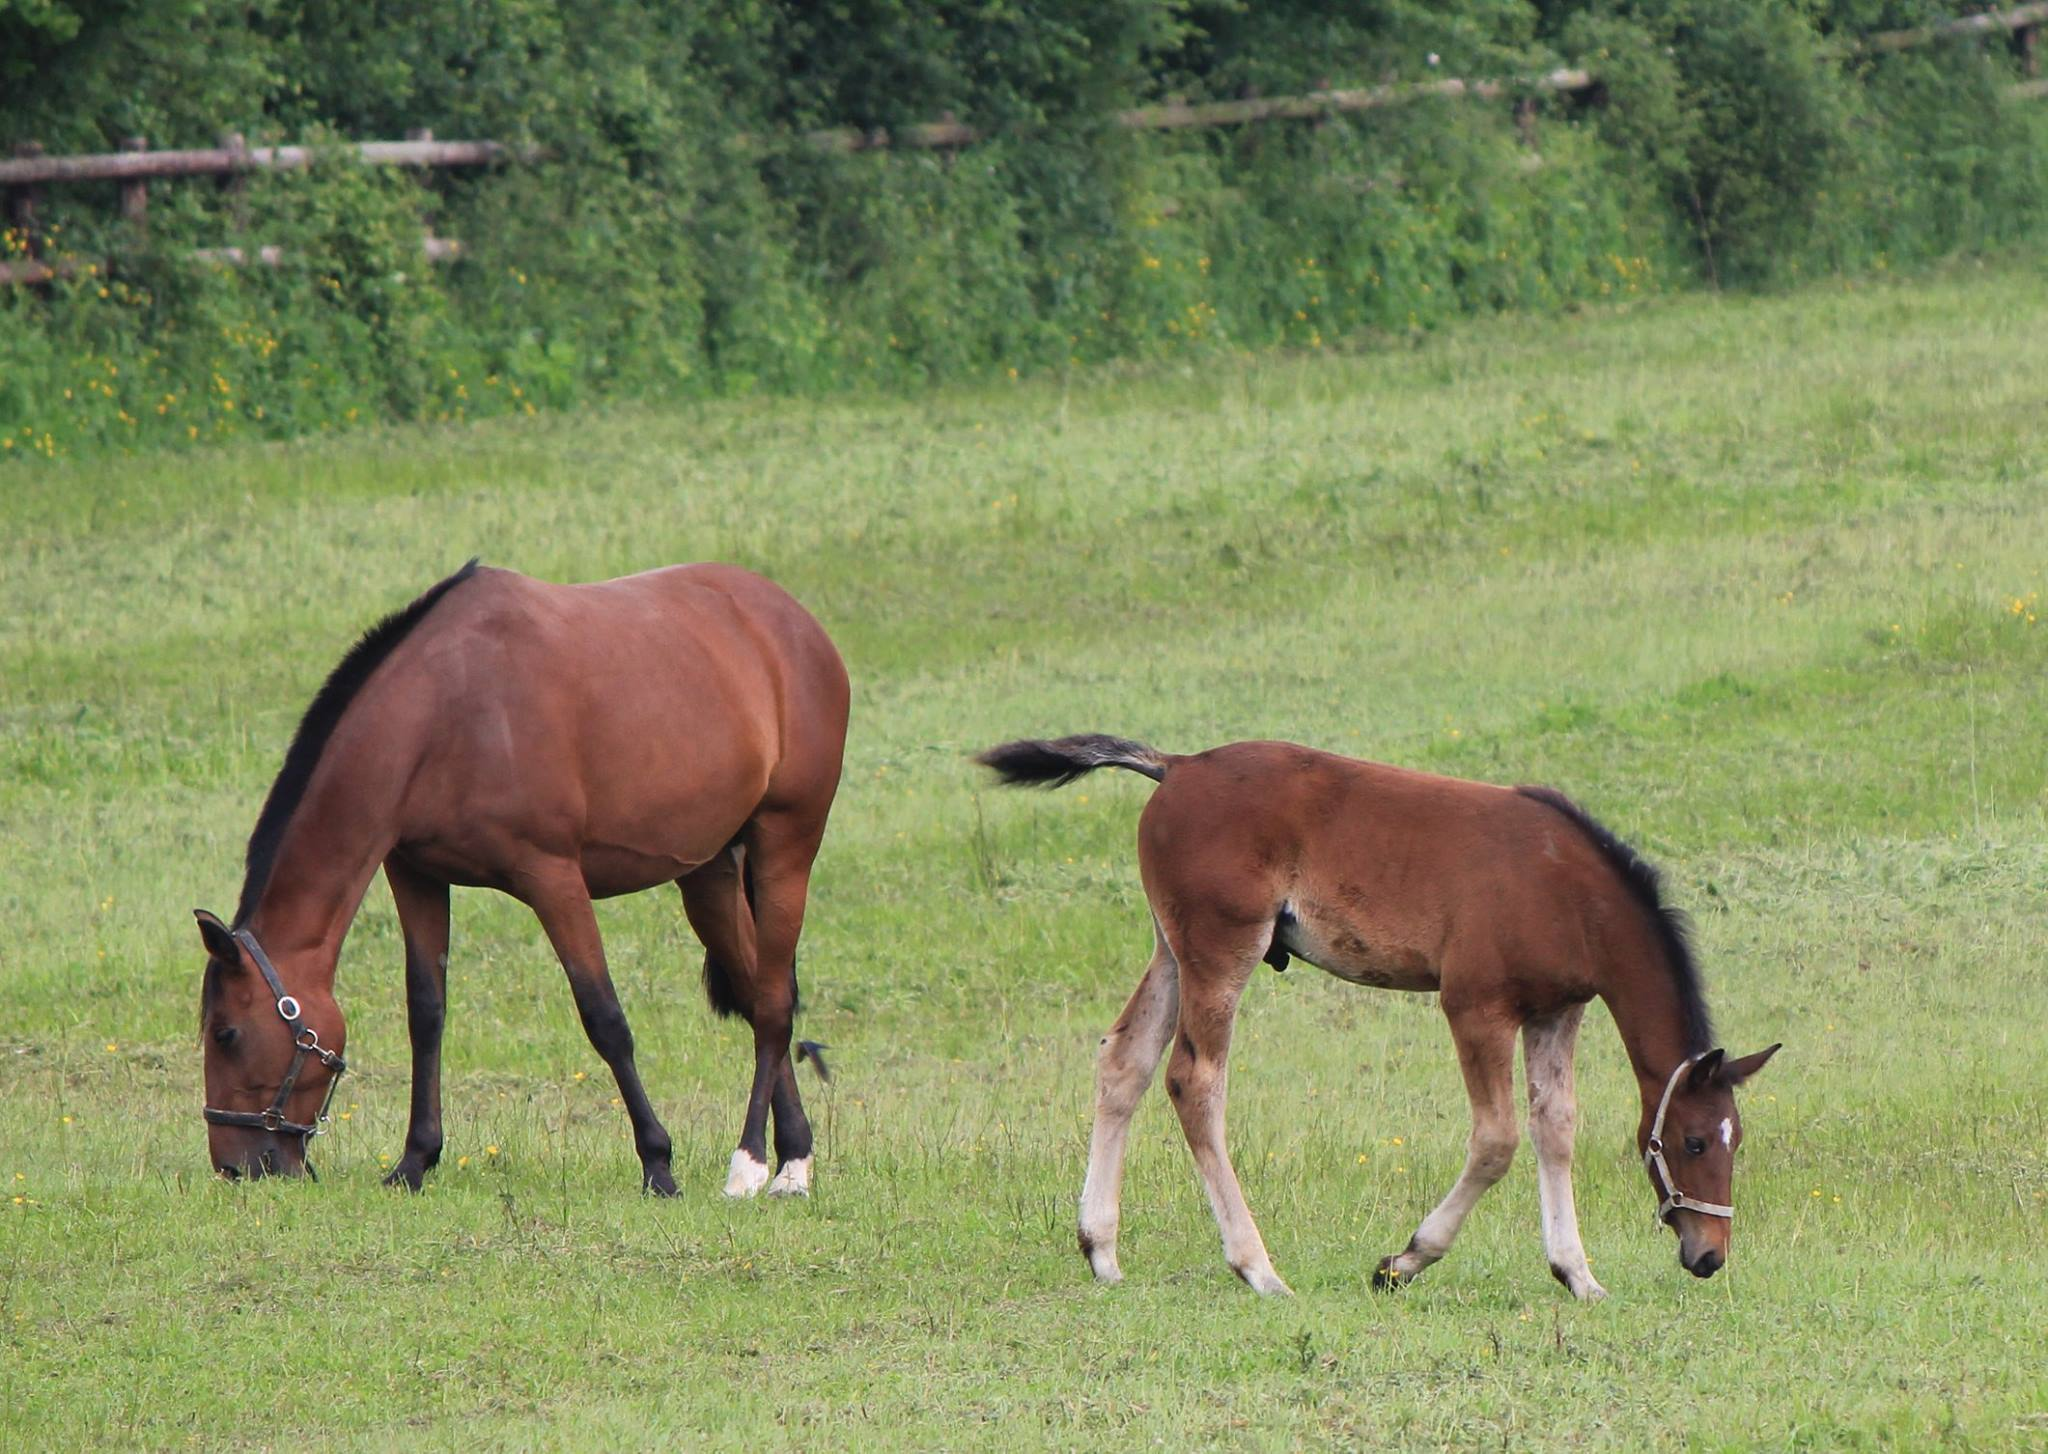 toulouse-darby-with-foal-from-scipion-du-goutier